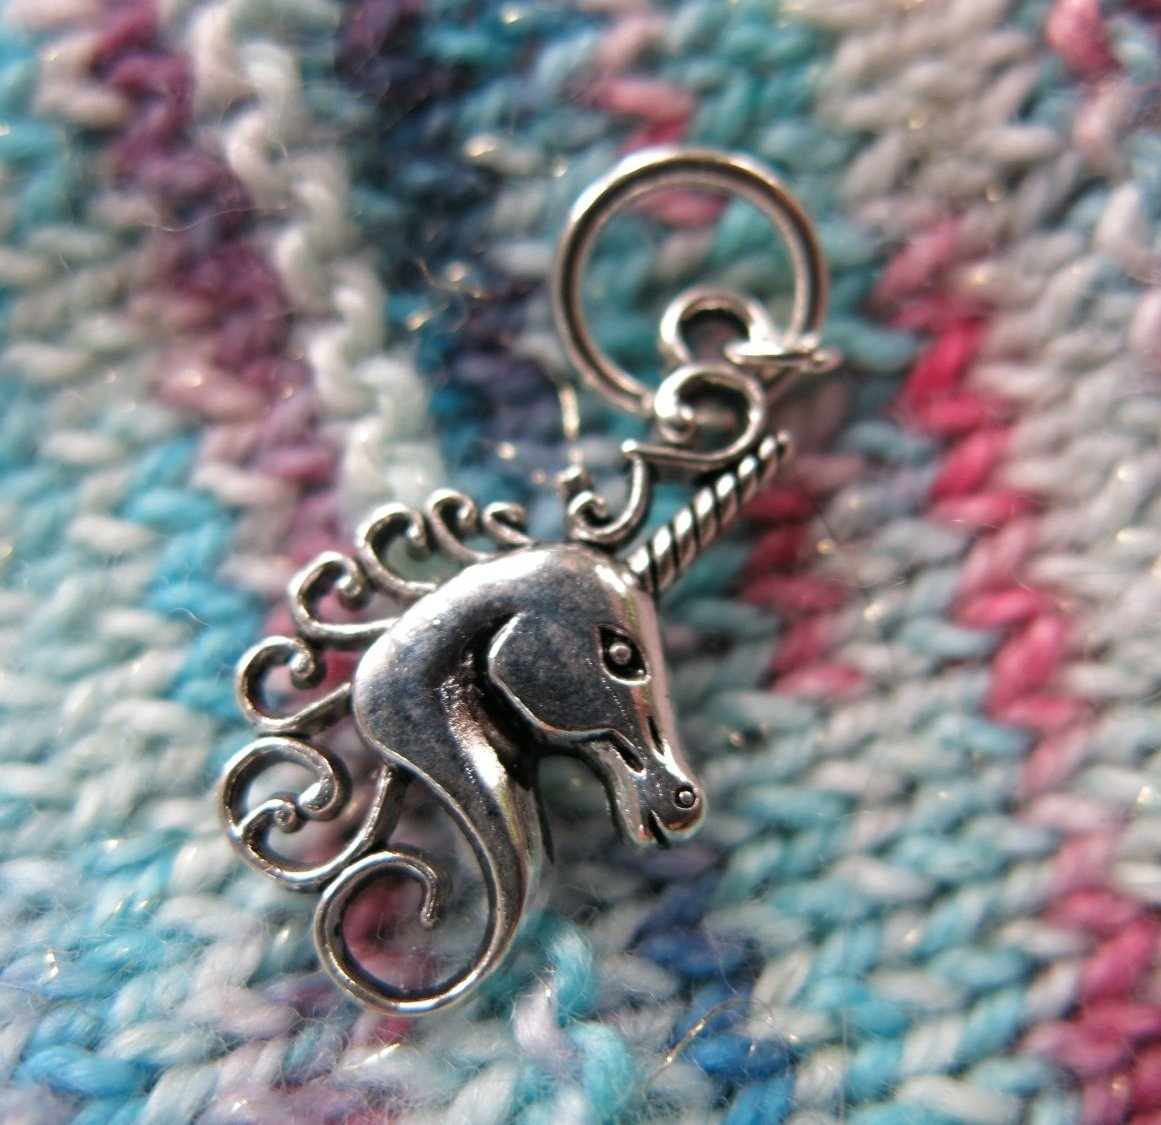 silver snagless unicorn stitch marker for knitting projects